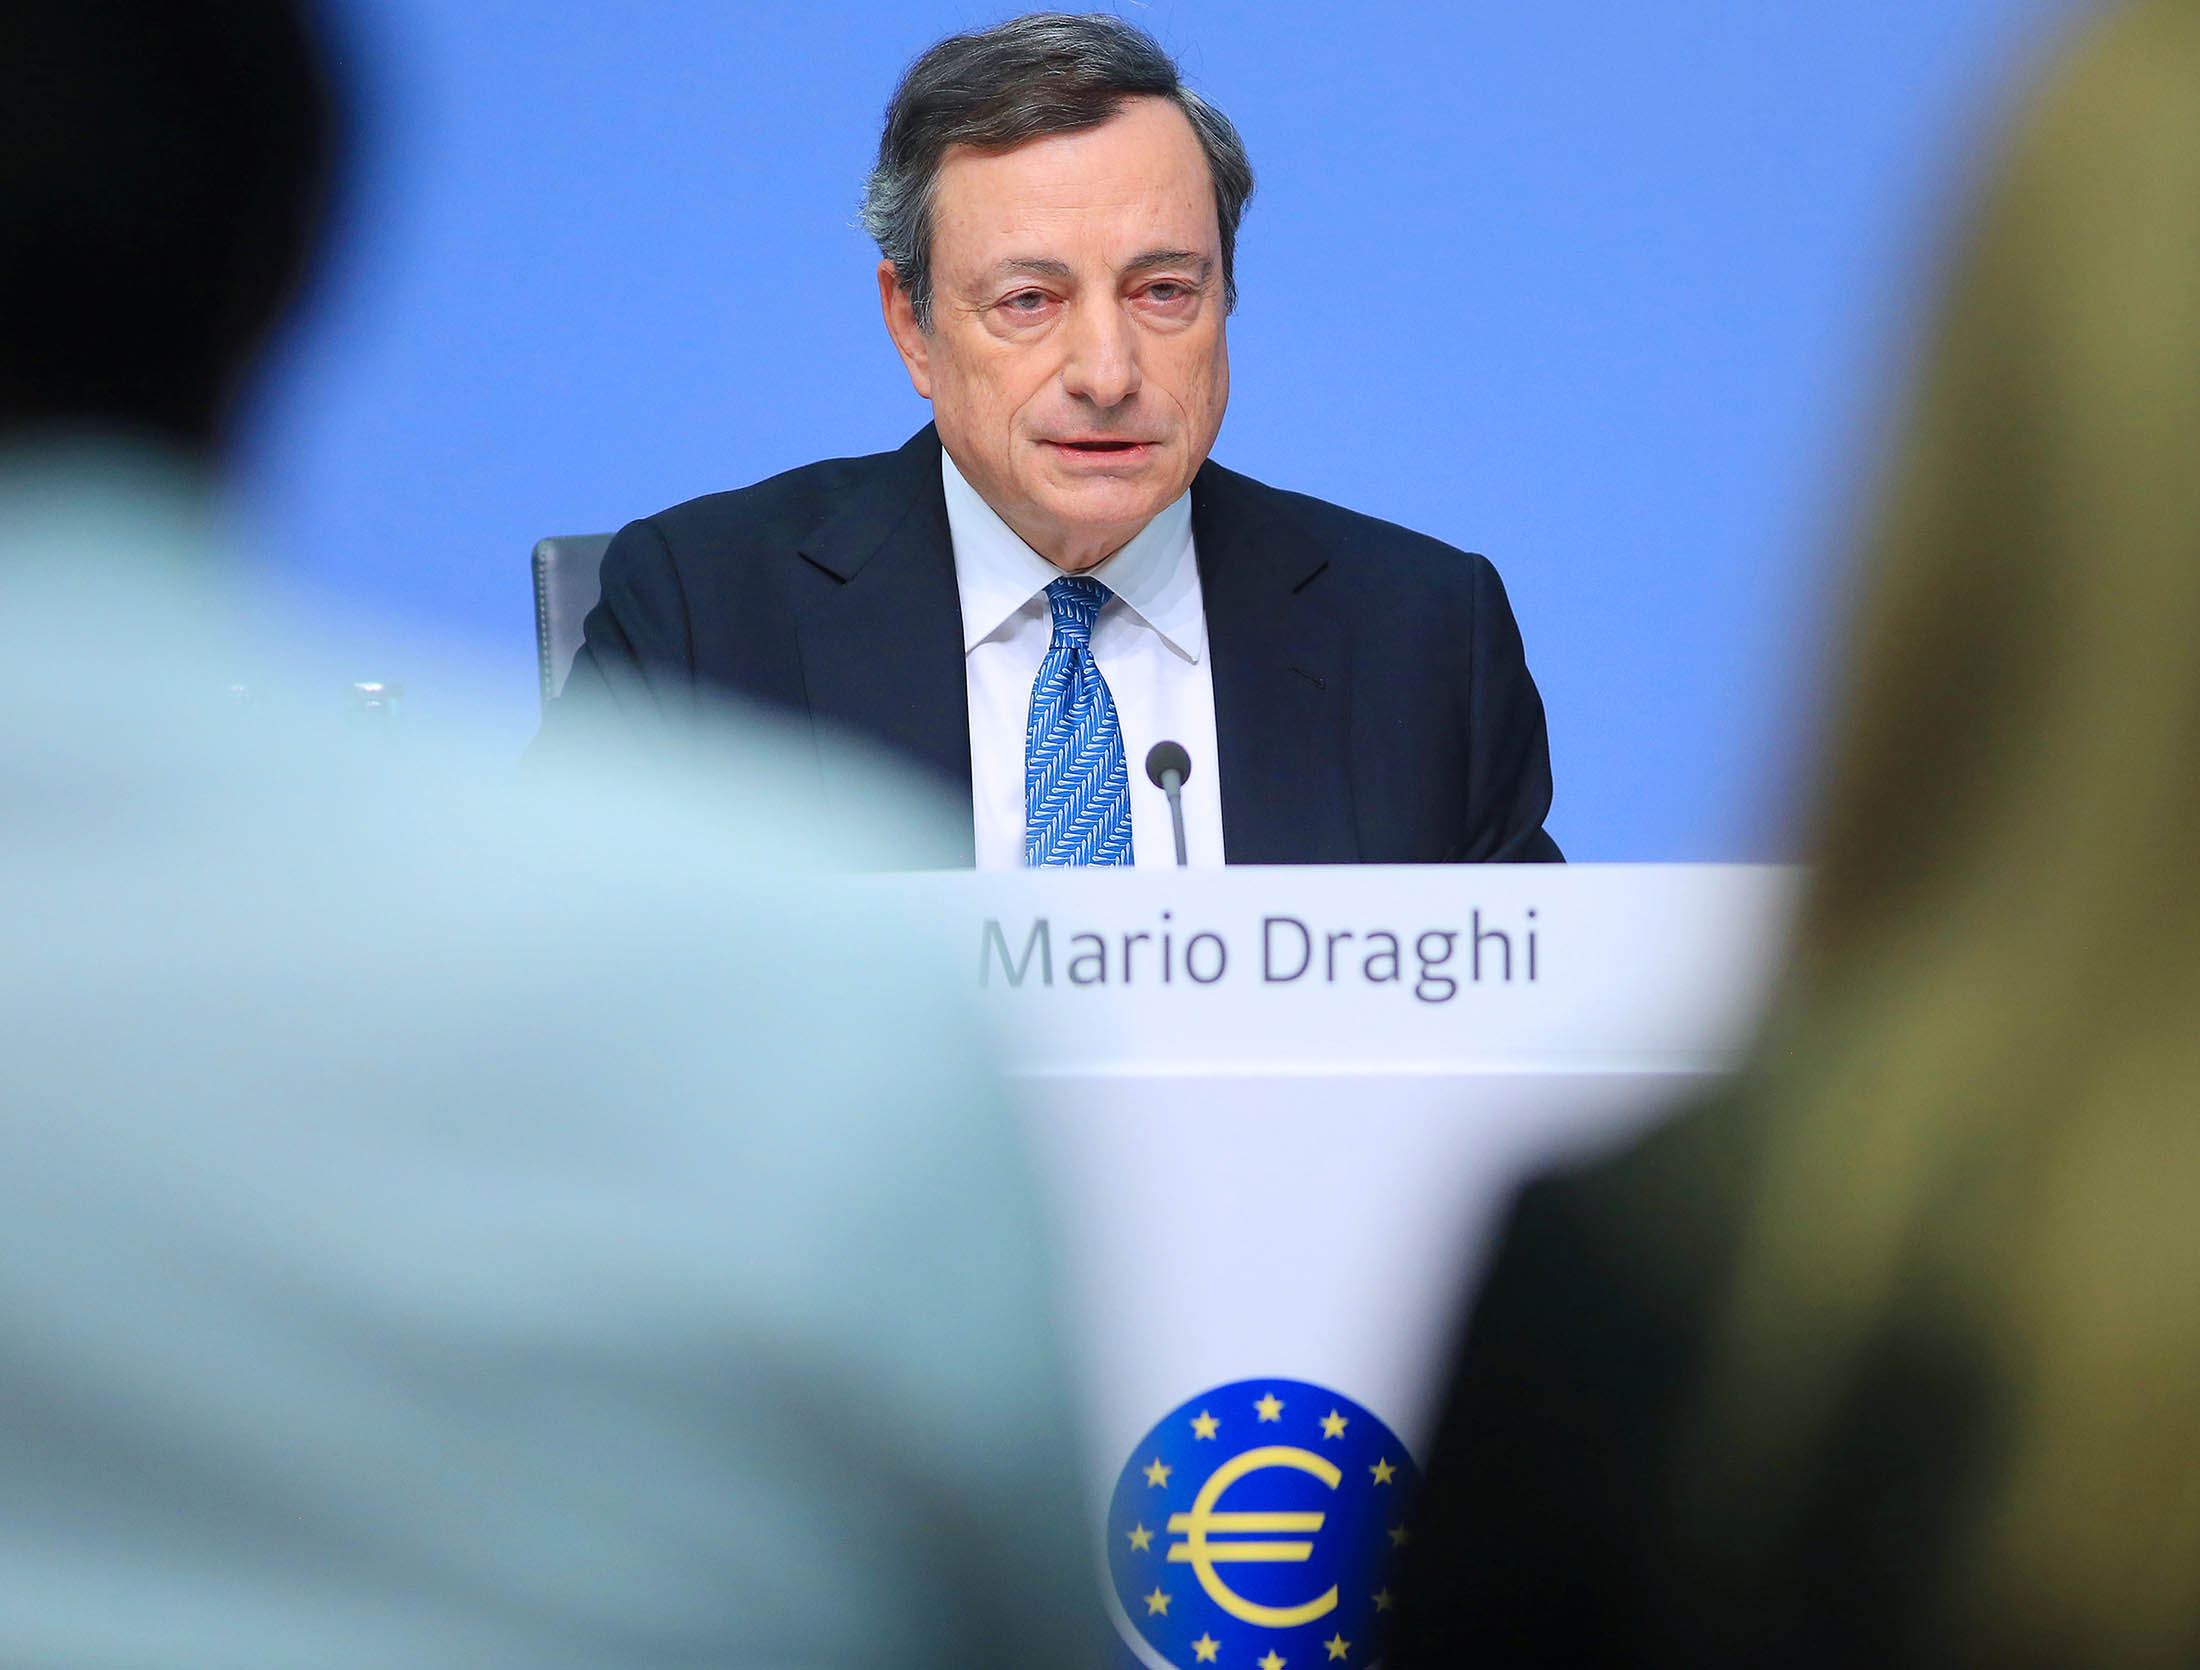 Draghi Said to Warn EU Leaders Elections Mustn't Derail Reform